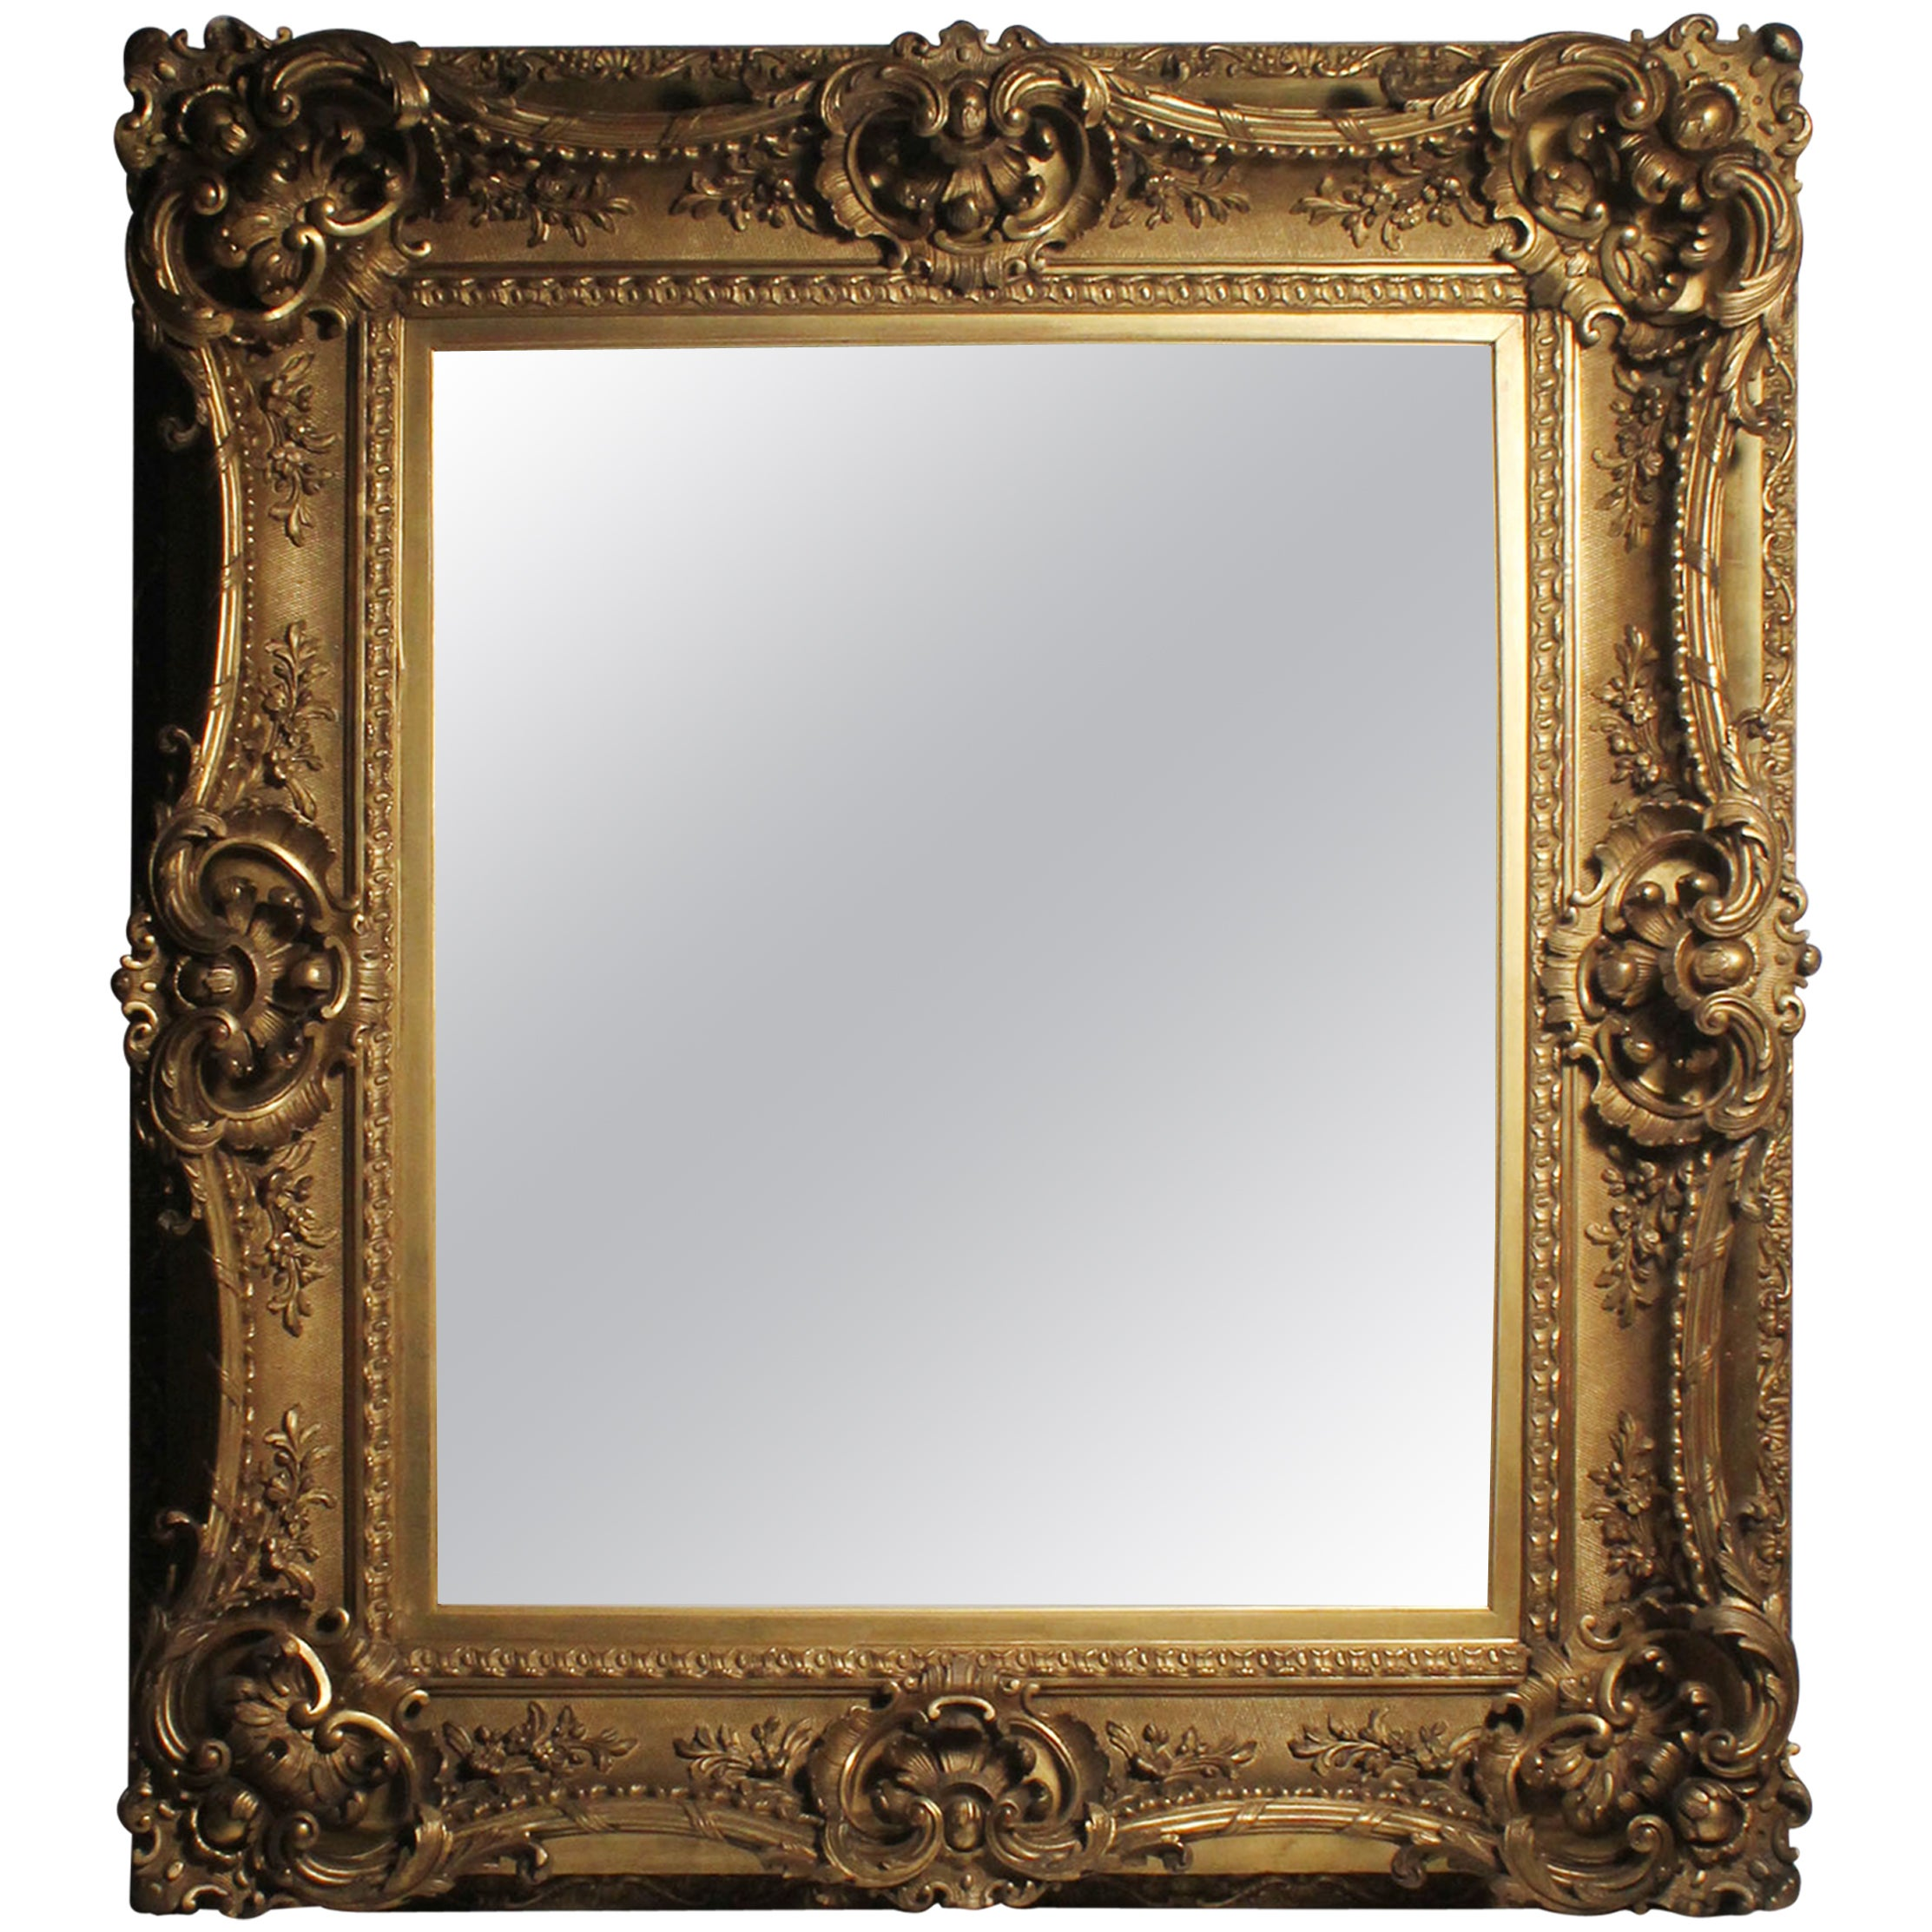 Antique italian gilt 19th century picture frame or mirror baroque antique italian gilt 19th century picture frame or mirror baroque rococo style for sale at 1stdibs jeuxipadfo Image collections